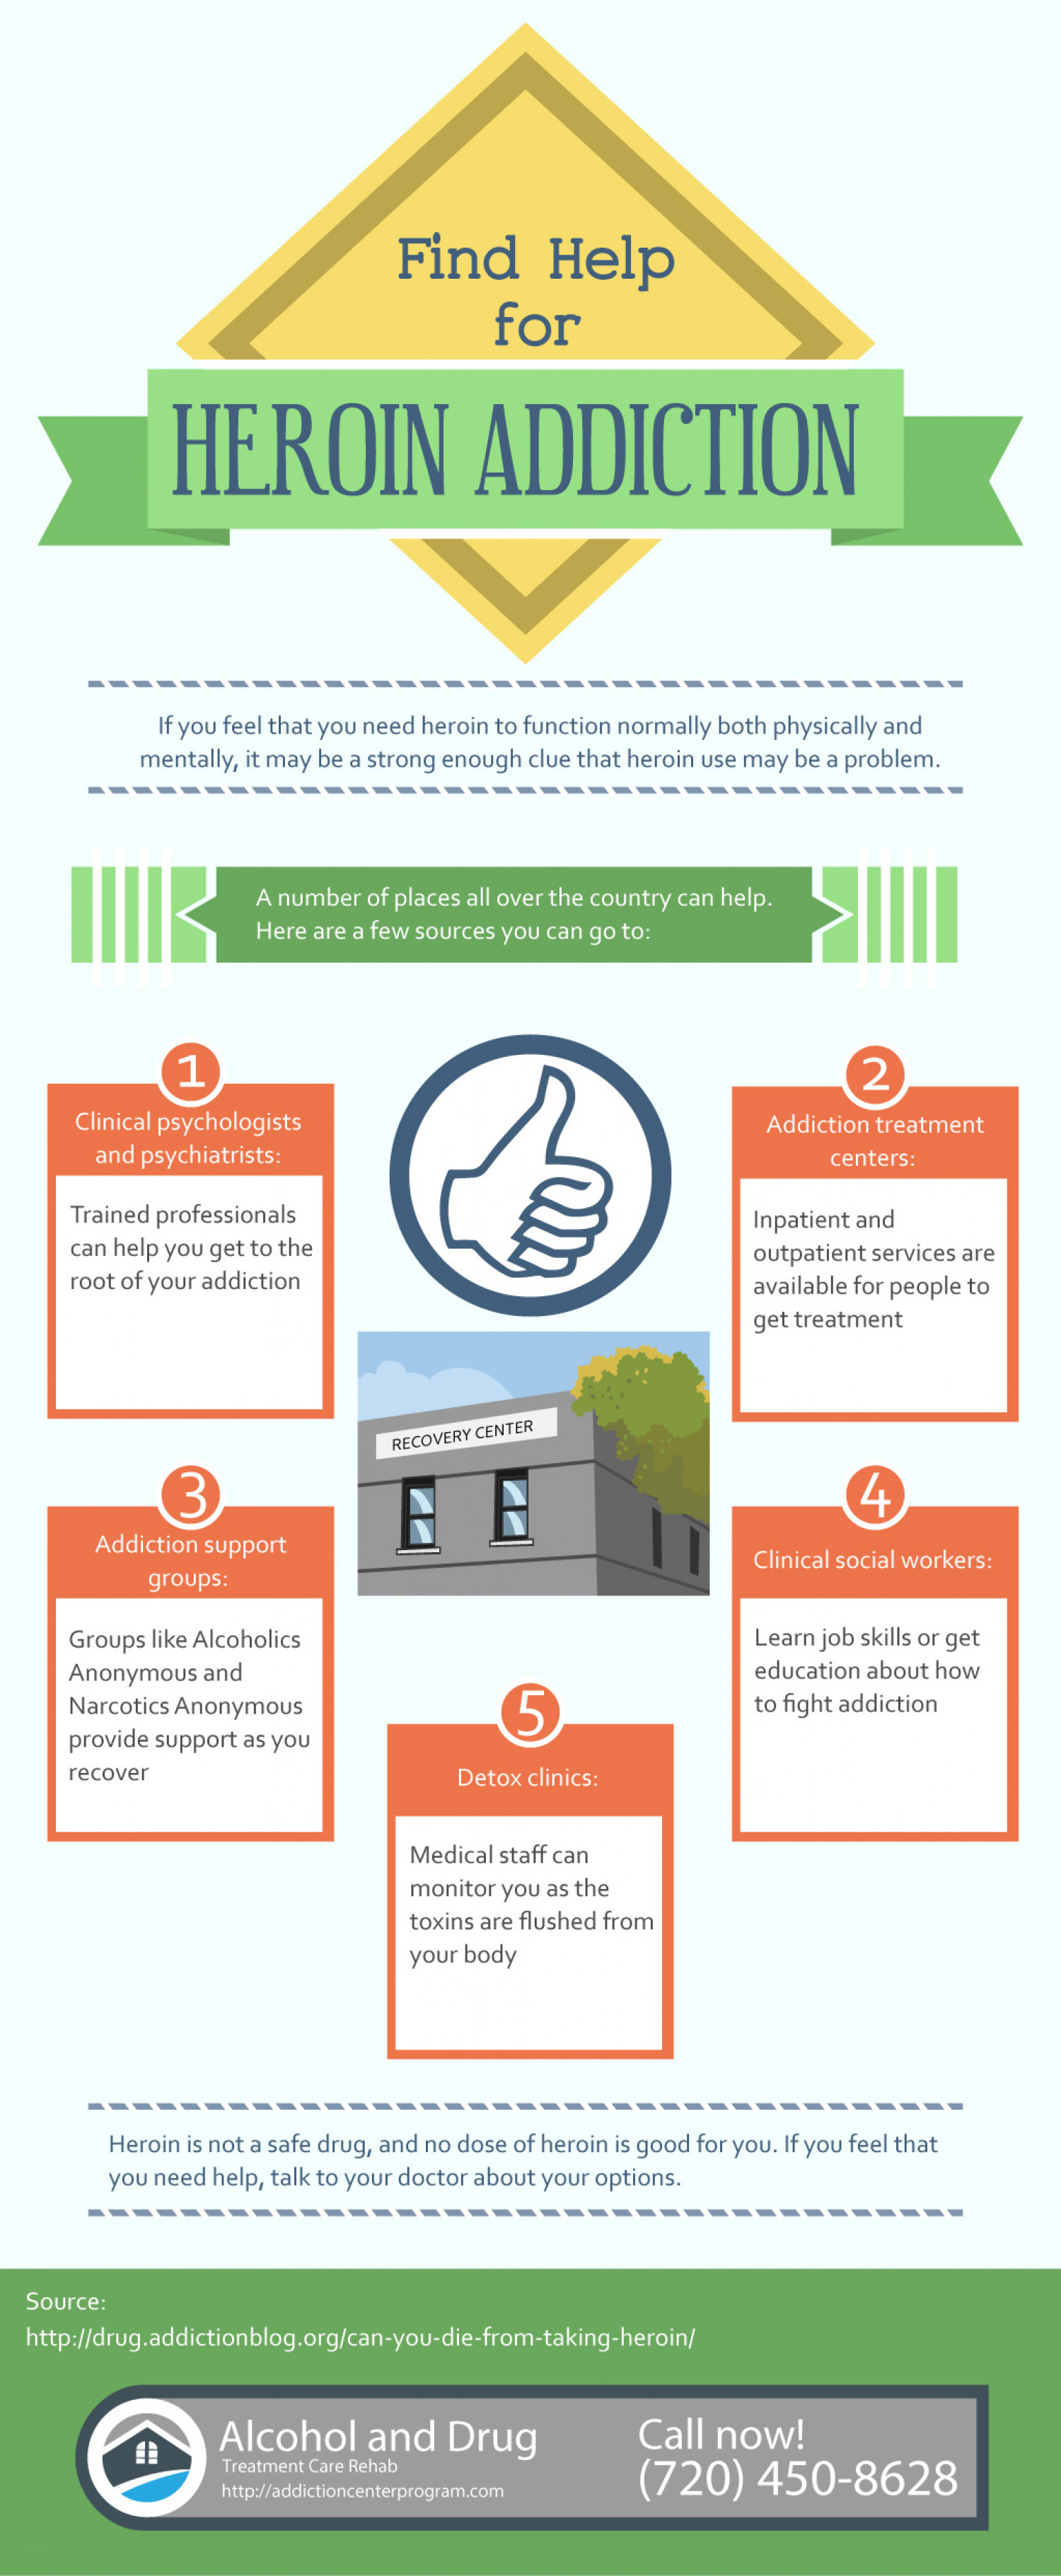 Find Help for Heroin Addiction   Alcohol and Drug Treatment Care Rehab Infographic